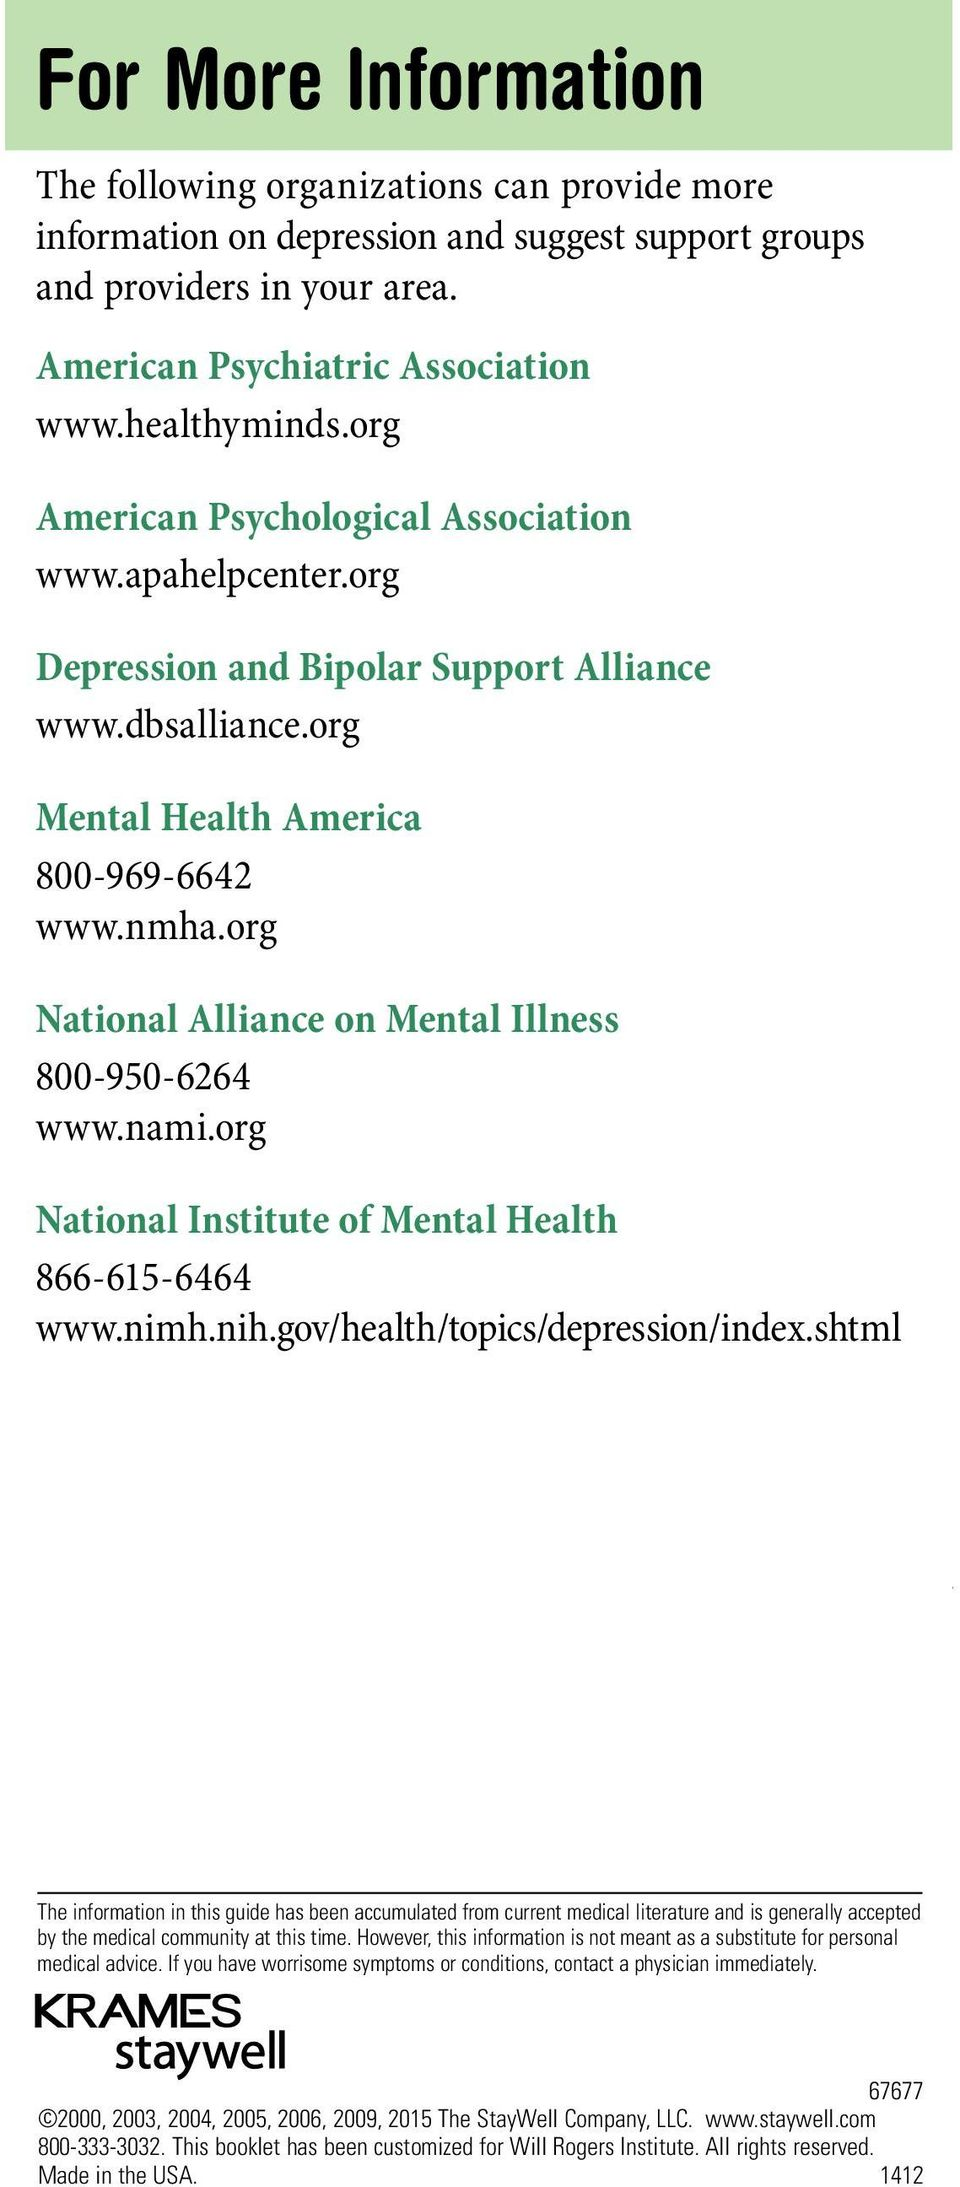 org National Alliance on Mental Illness 800-950-6264 www.nami.org National Institute of Mental Health 866-615-6464 www.nimh.nih.gov/health/topics/depression/index.